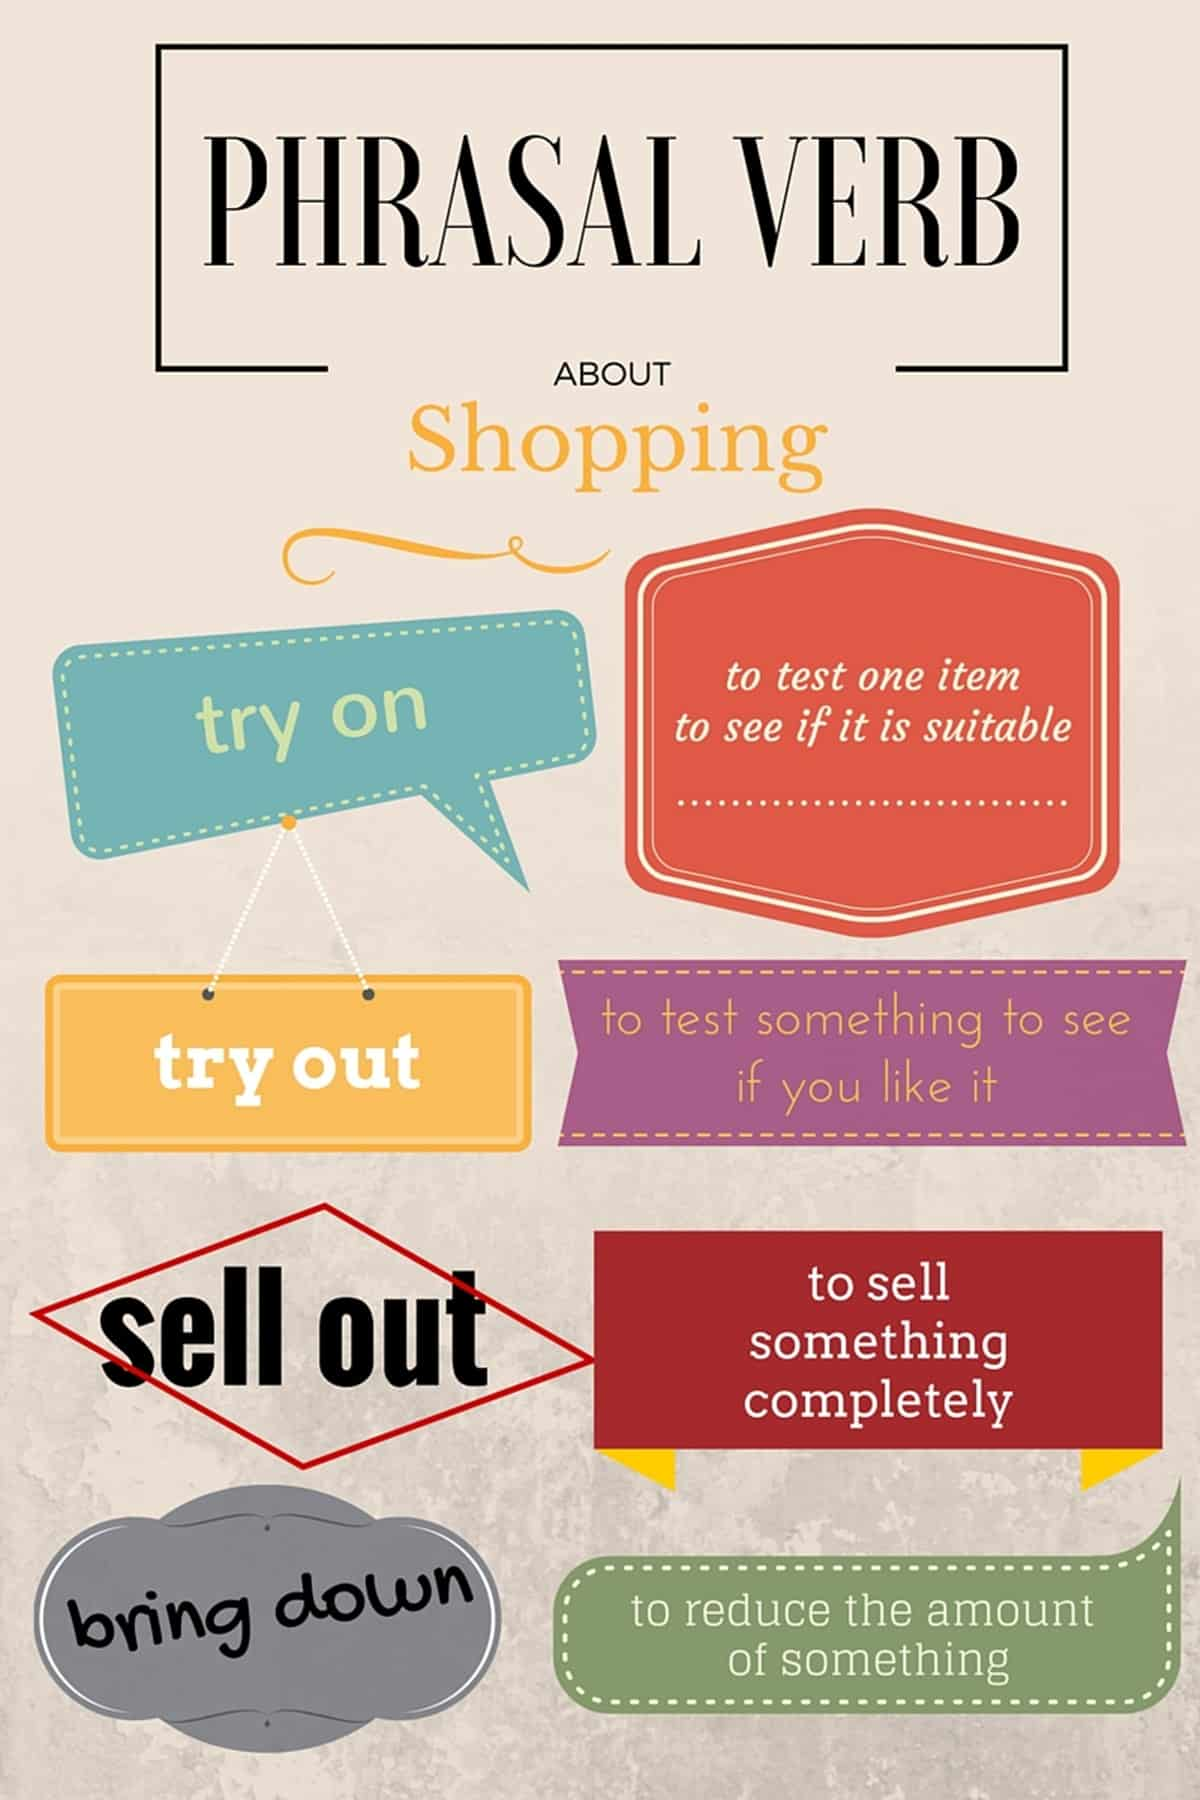 Phrasal Verbs for SHOPPING